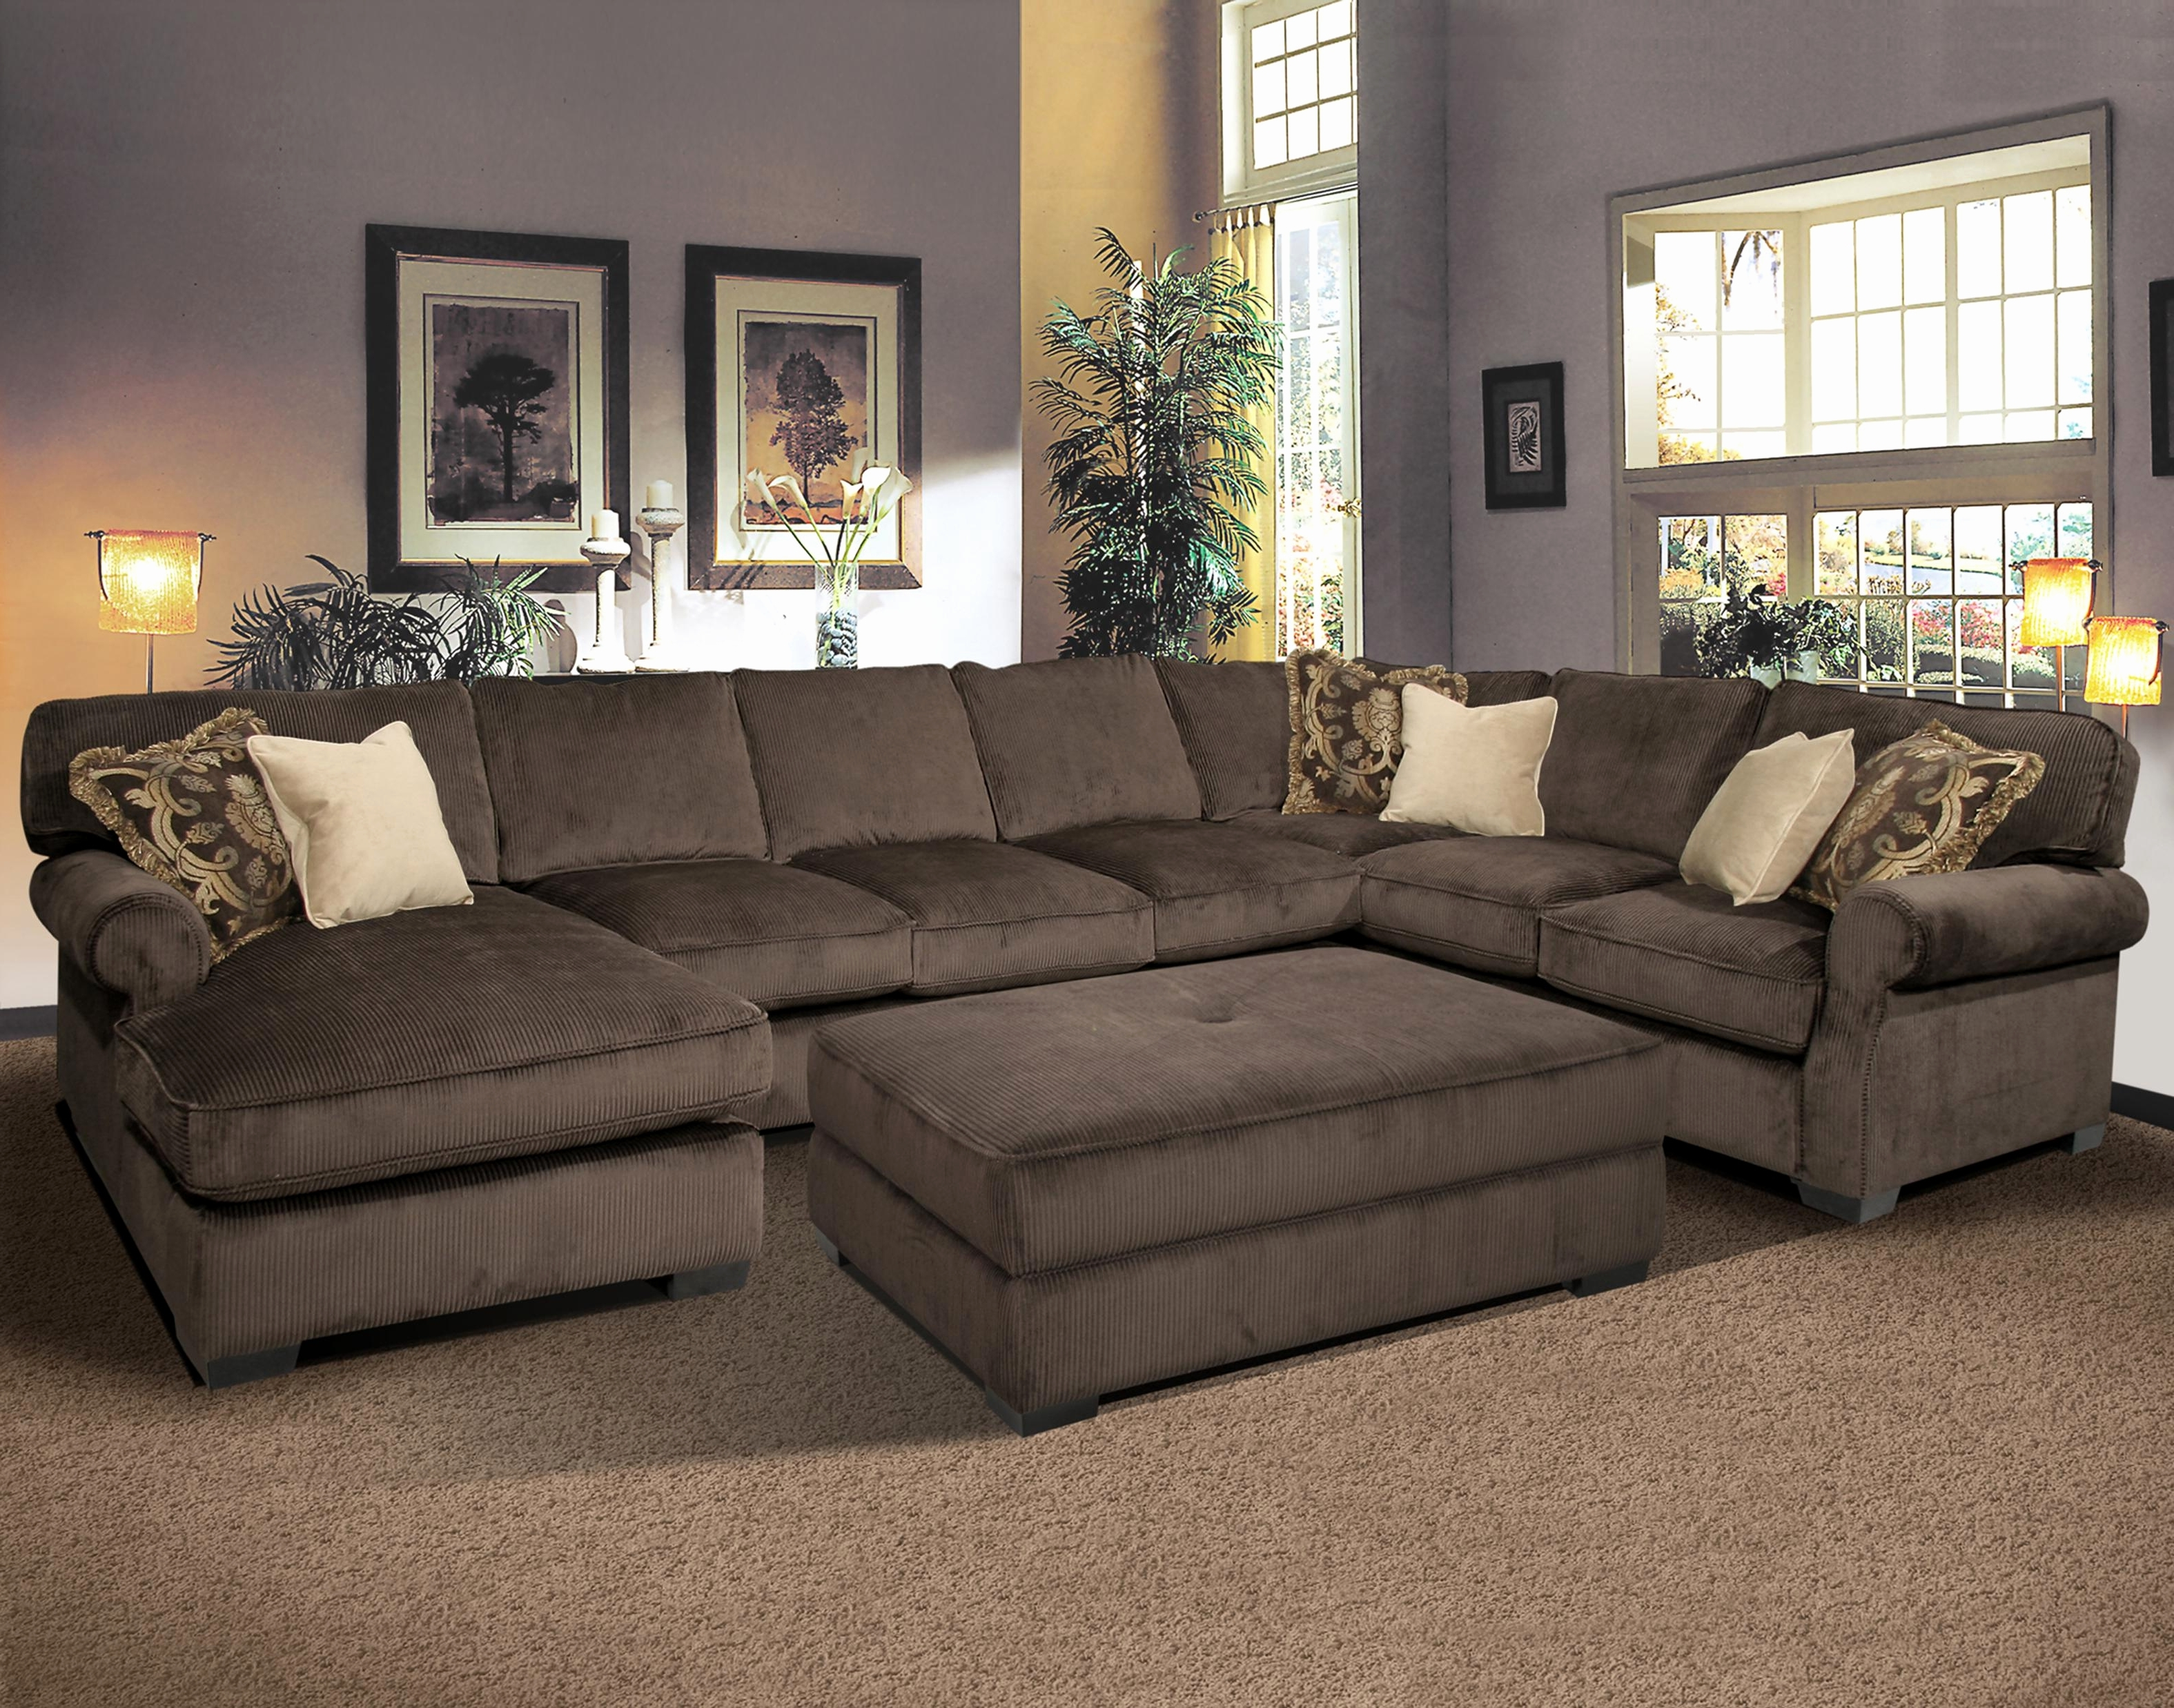 Widely Used Best Modular Sectional Sofa Good Sofa Elegant Clearance Sectional Inside Clearance Sectional Sofas (View 15 of 15)